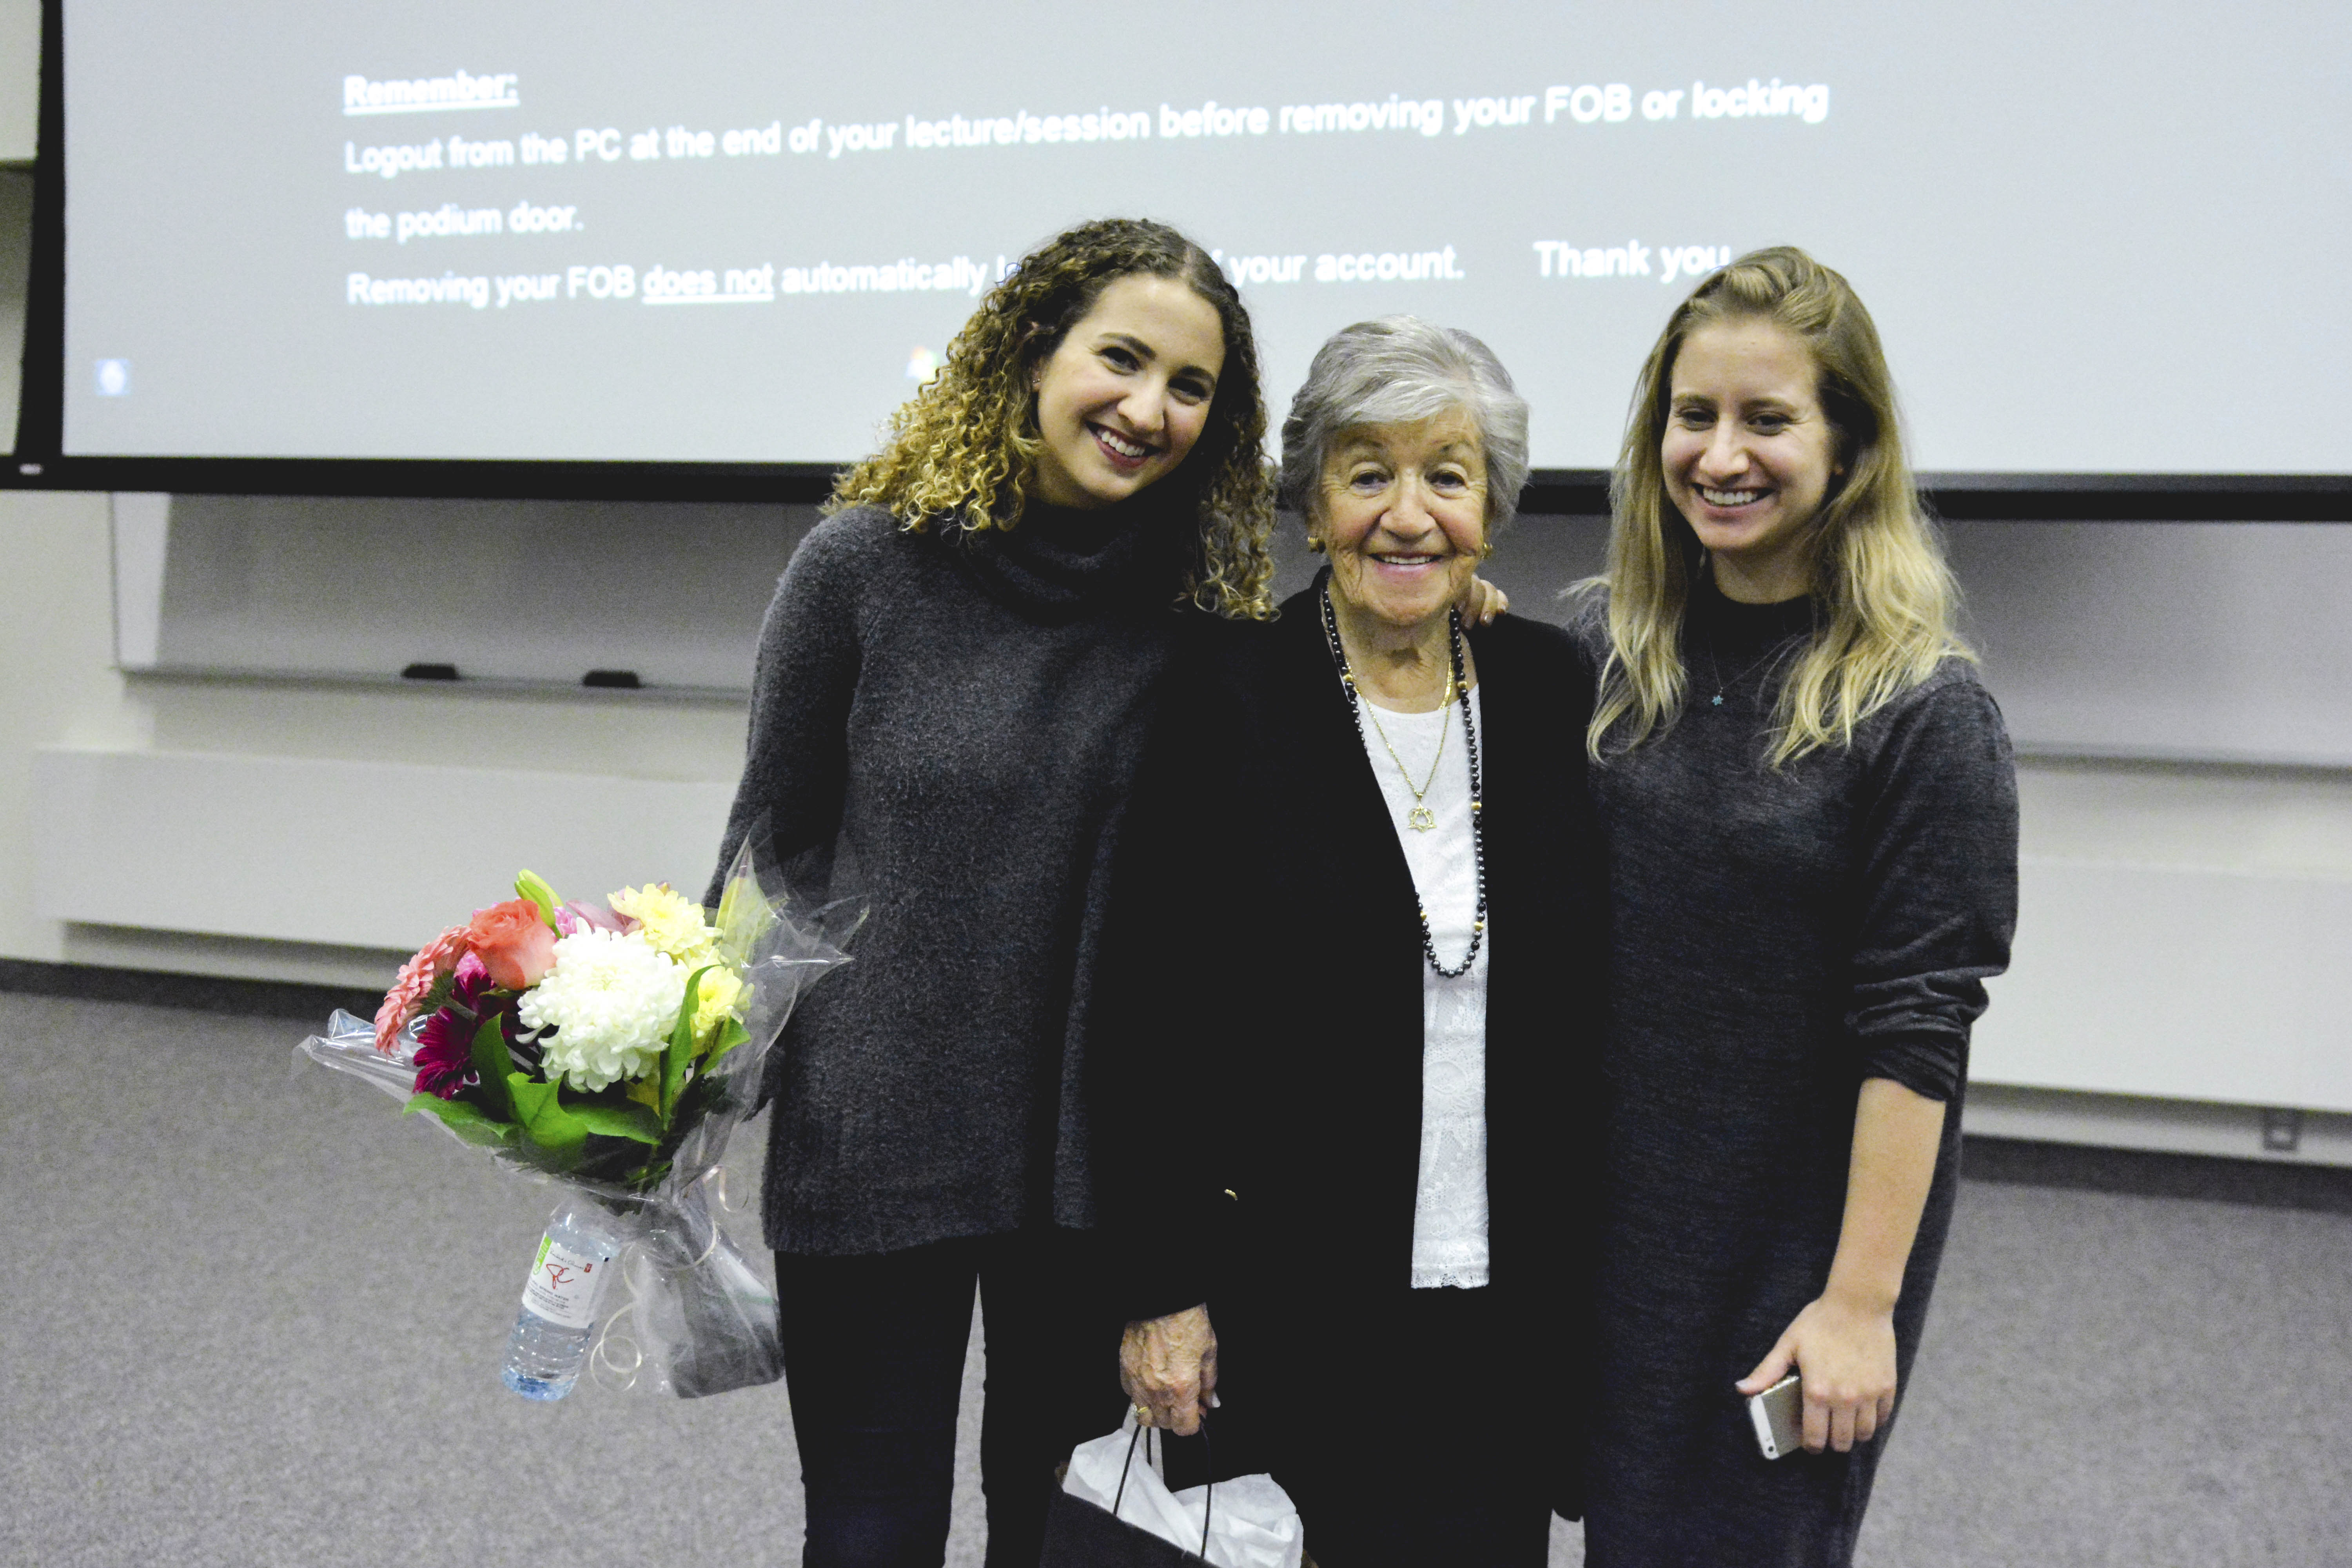 Holocaust survivor Paula Goldhar (middle) with her granddaughters Dayna Goldhar (left) and Eli Goldhar (right). Photo by Ju Hyun Kim